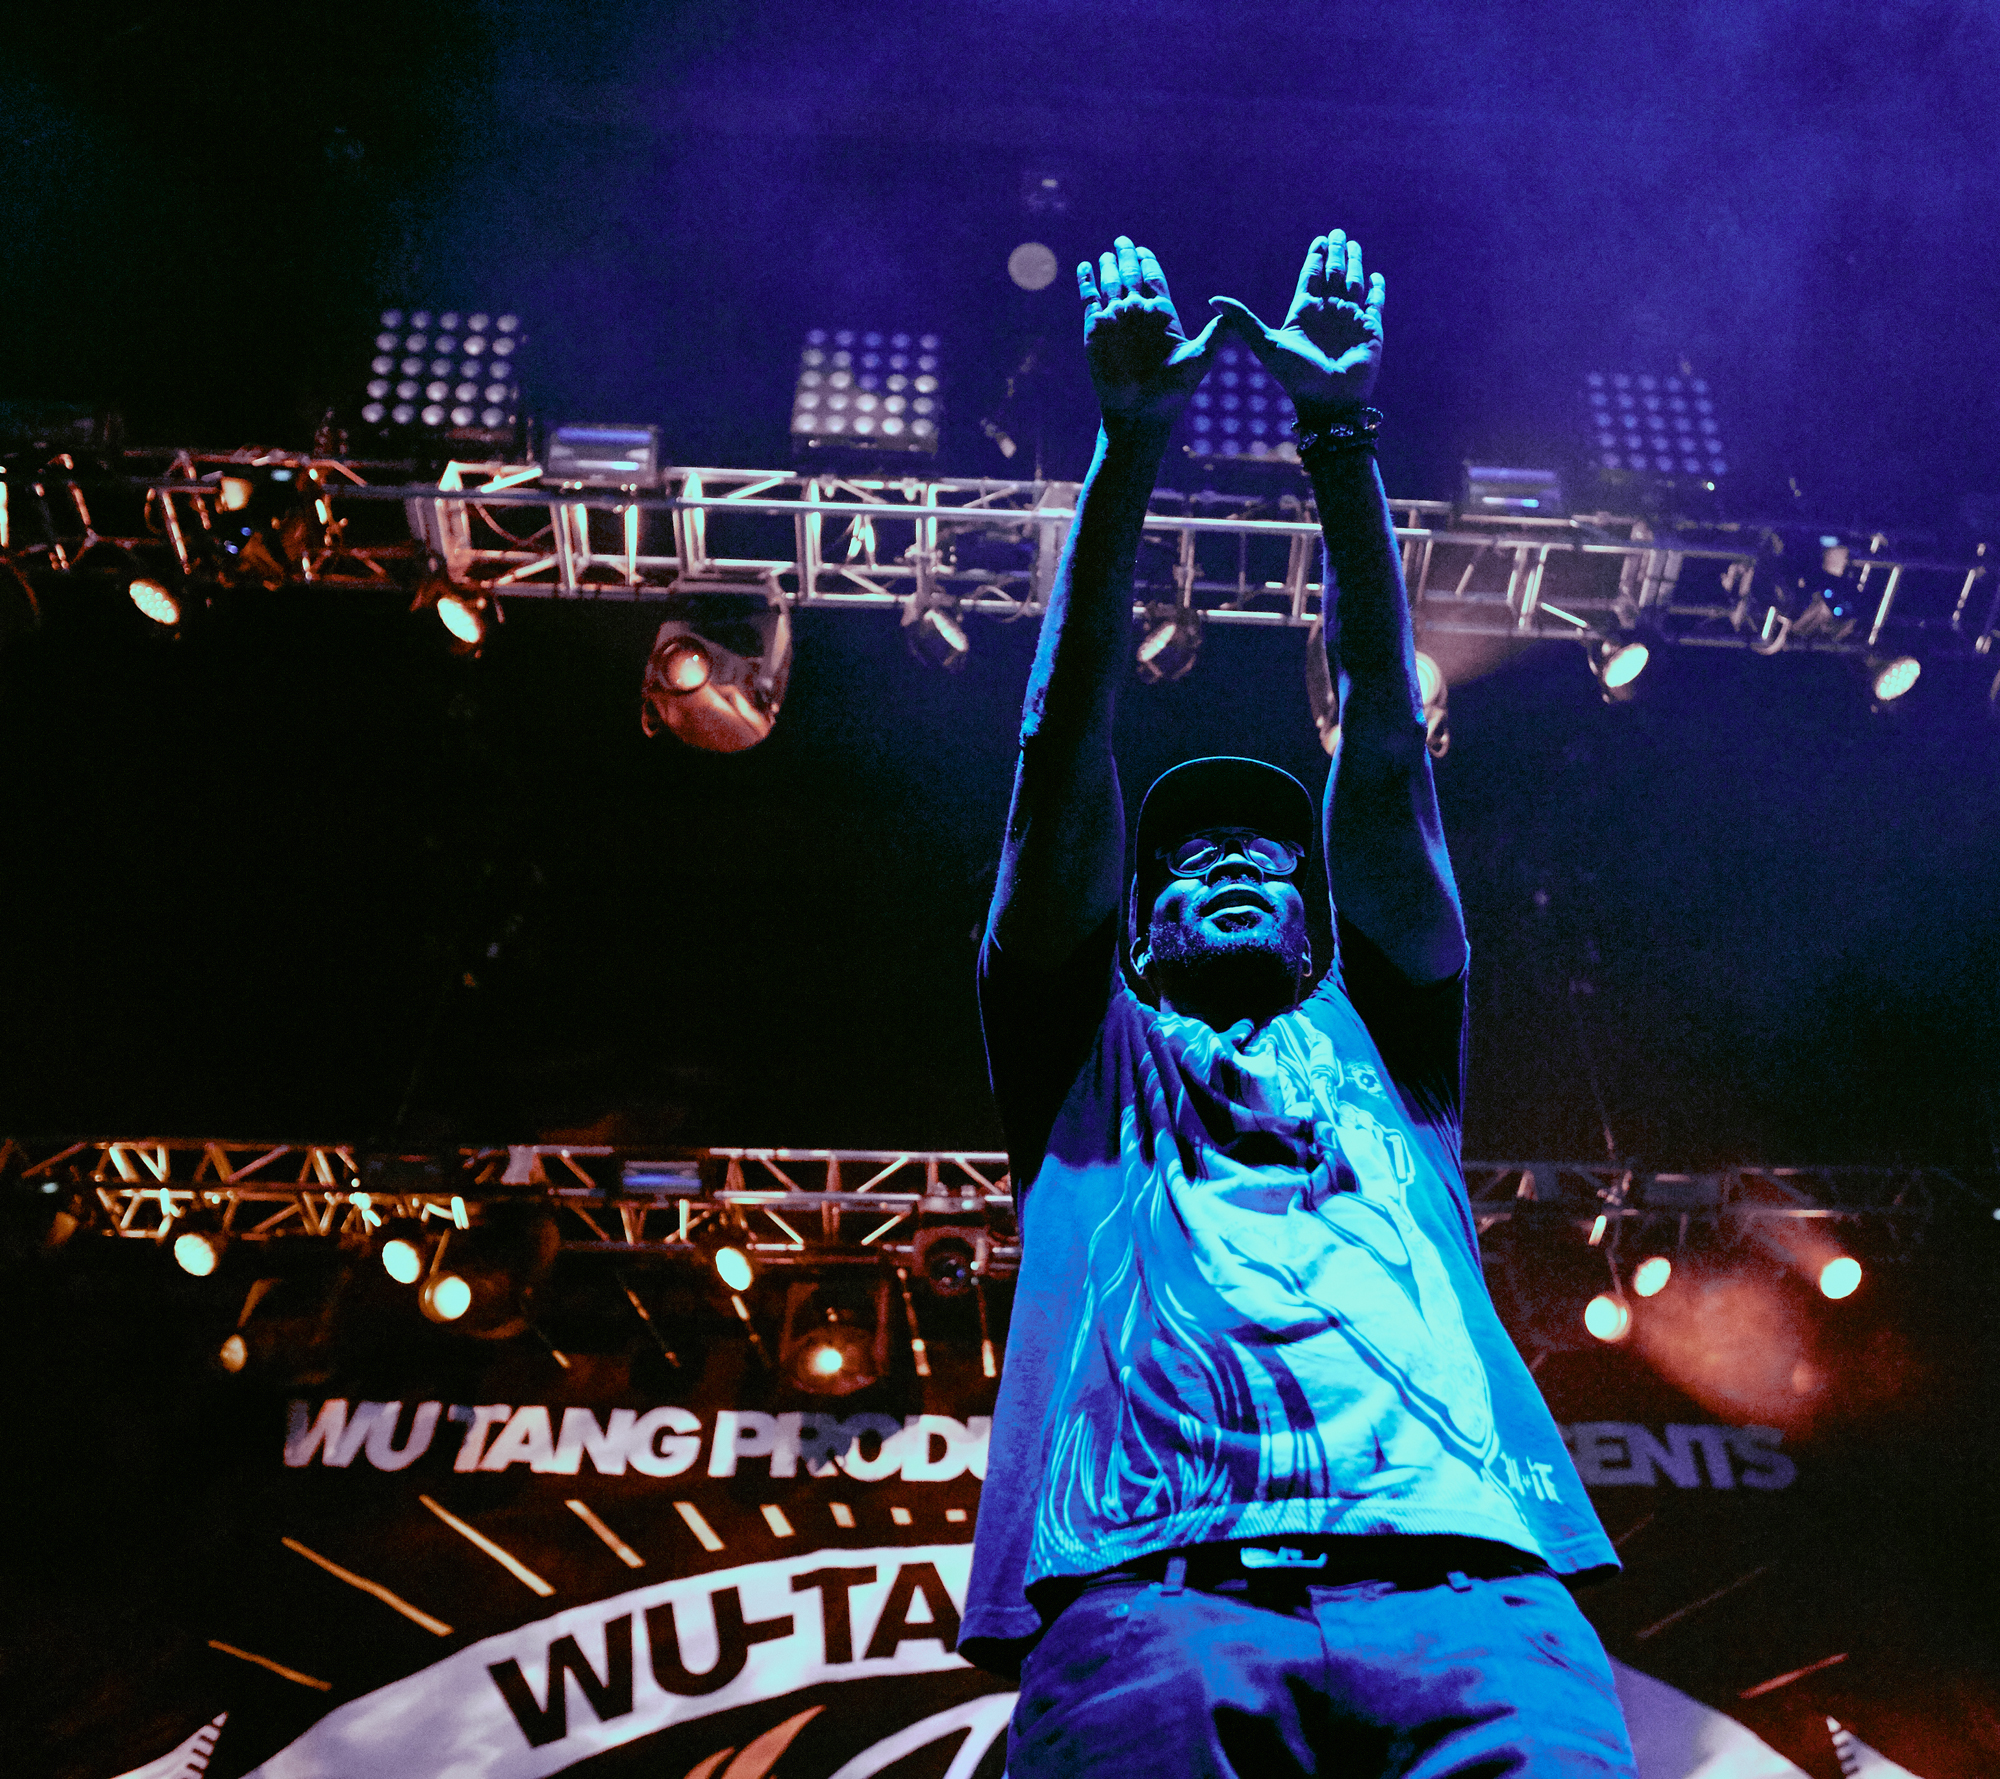 RZA holding up WU-TANG hand symbol will performing live at a concert